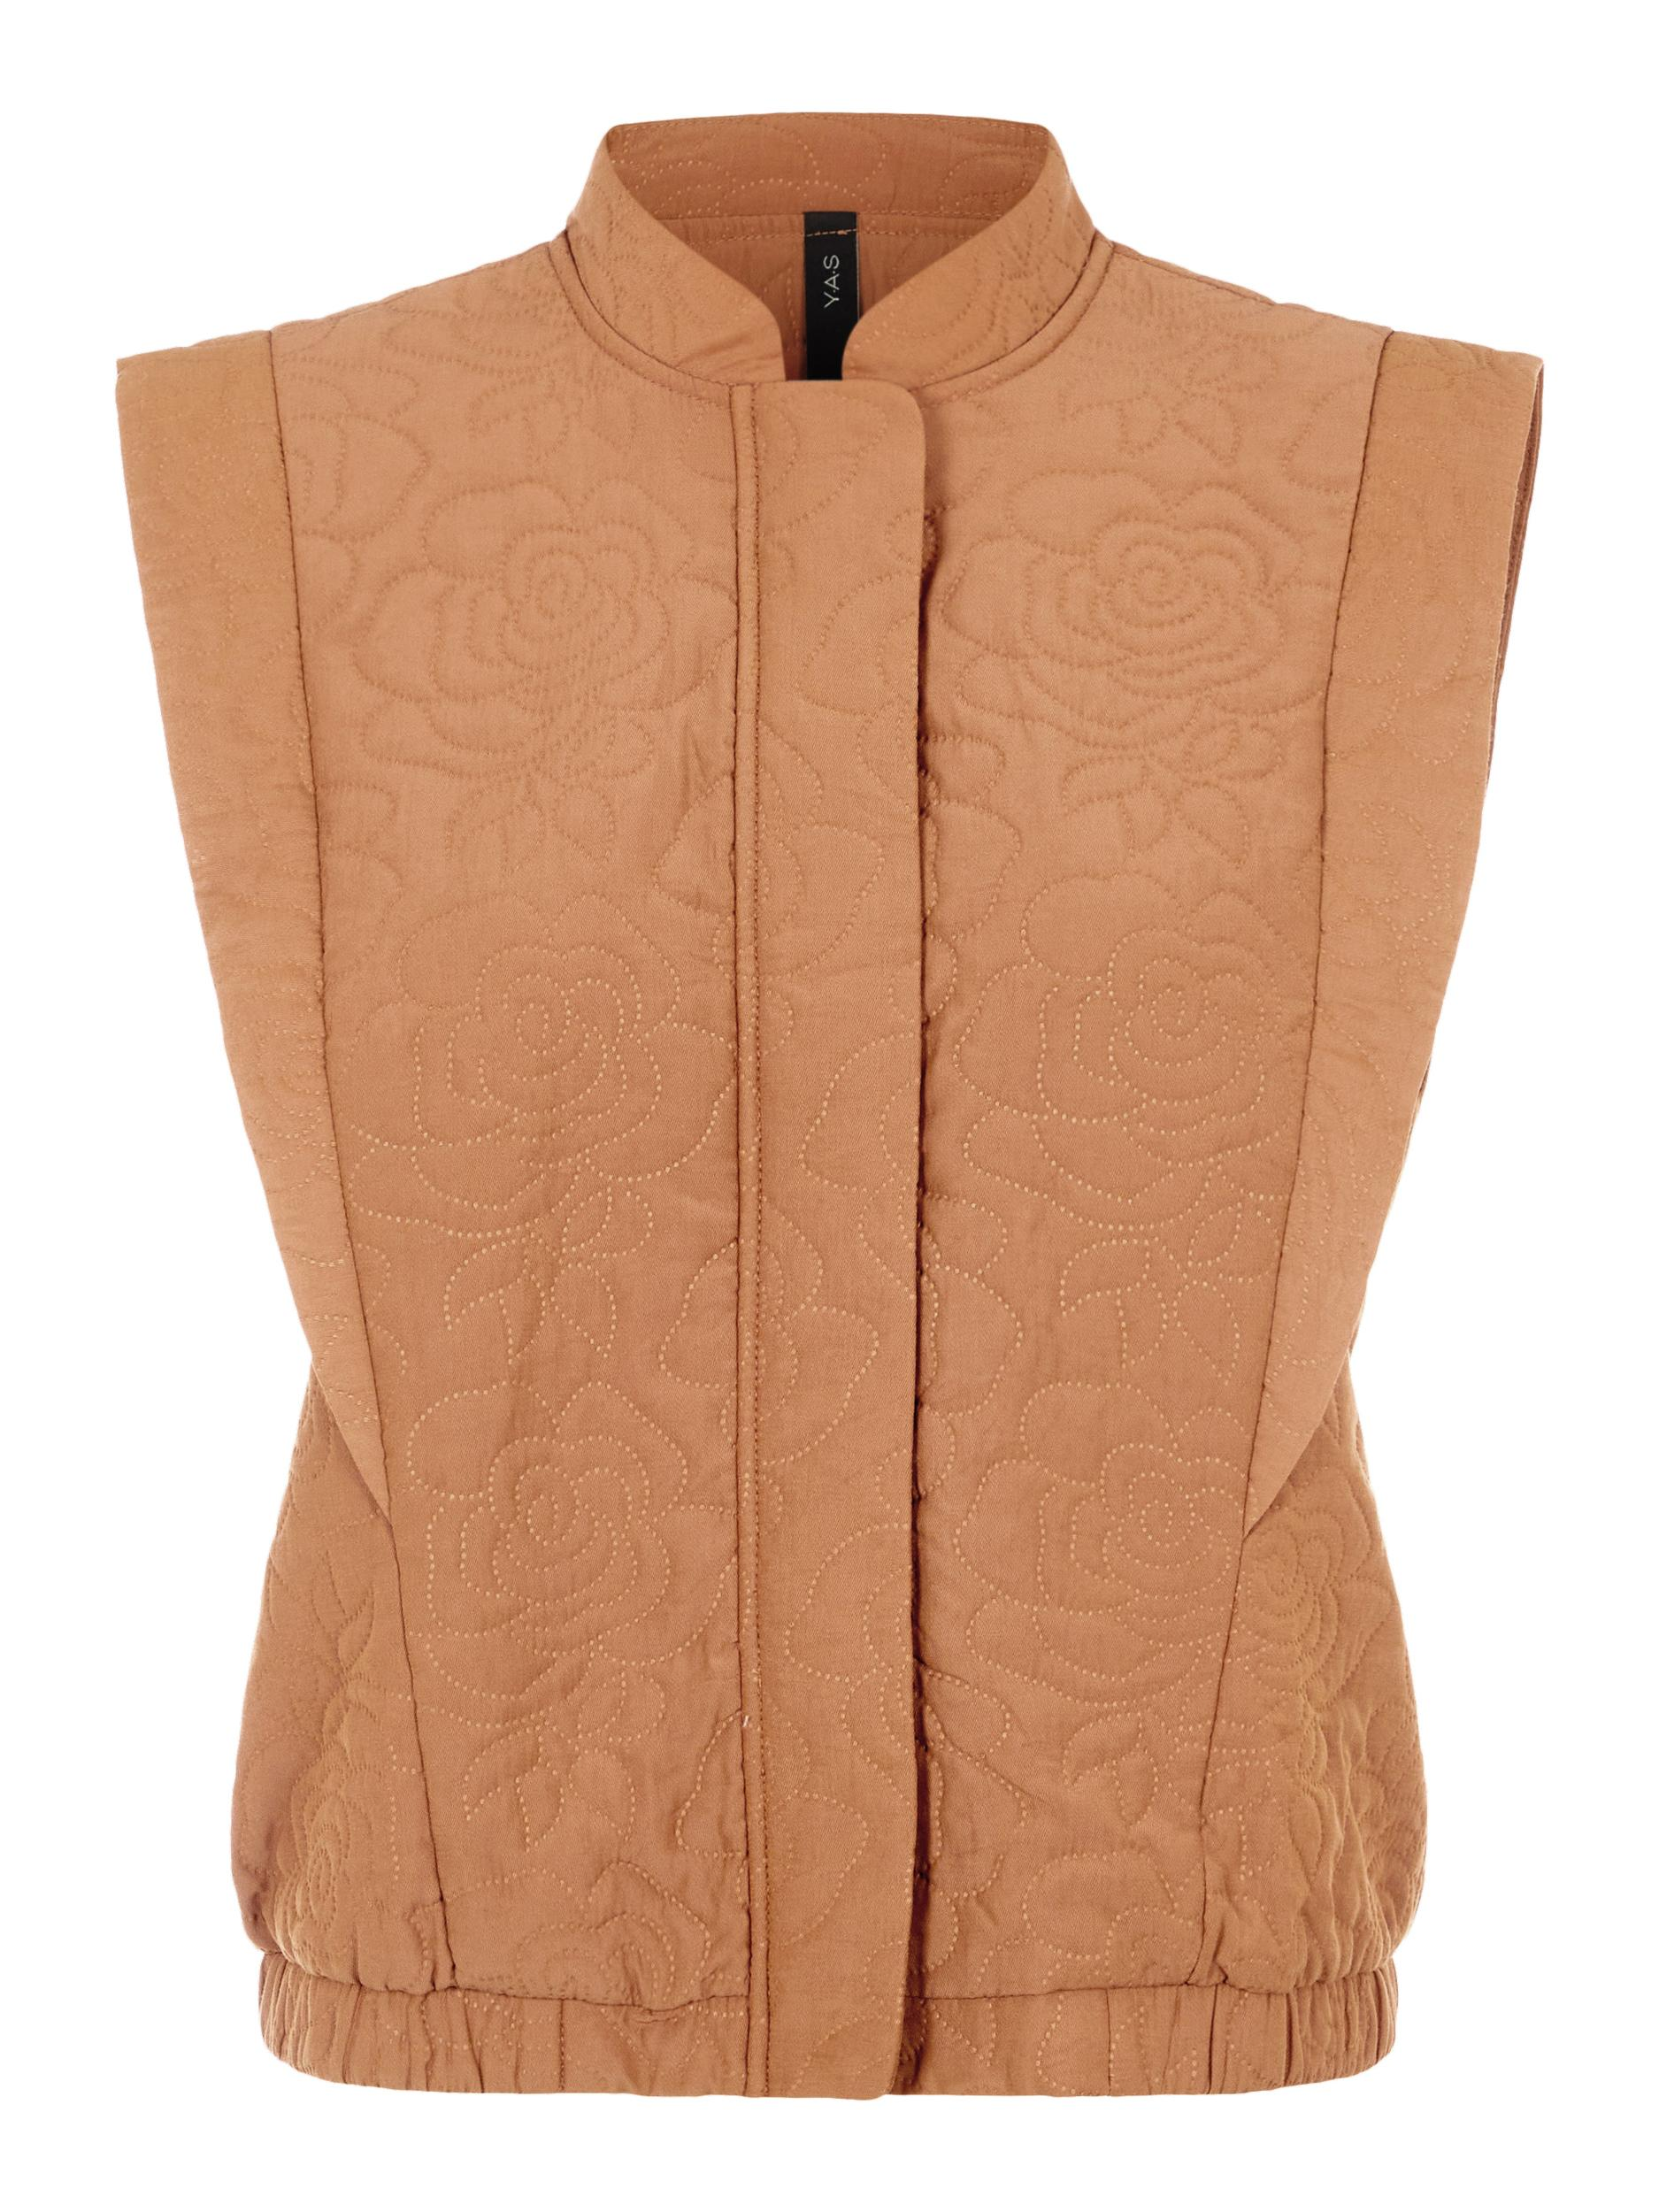 Y.A.S Sira vest